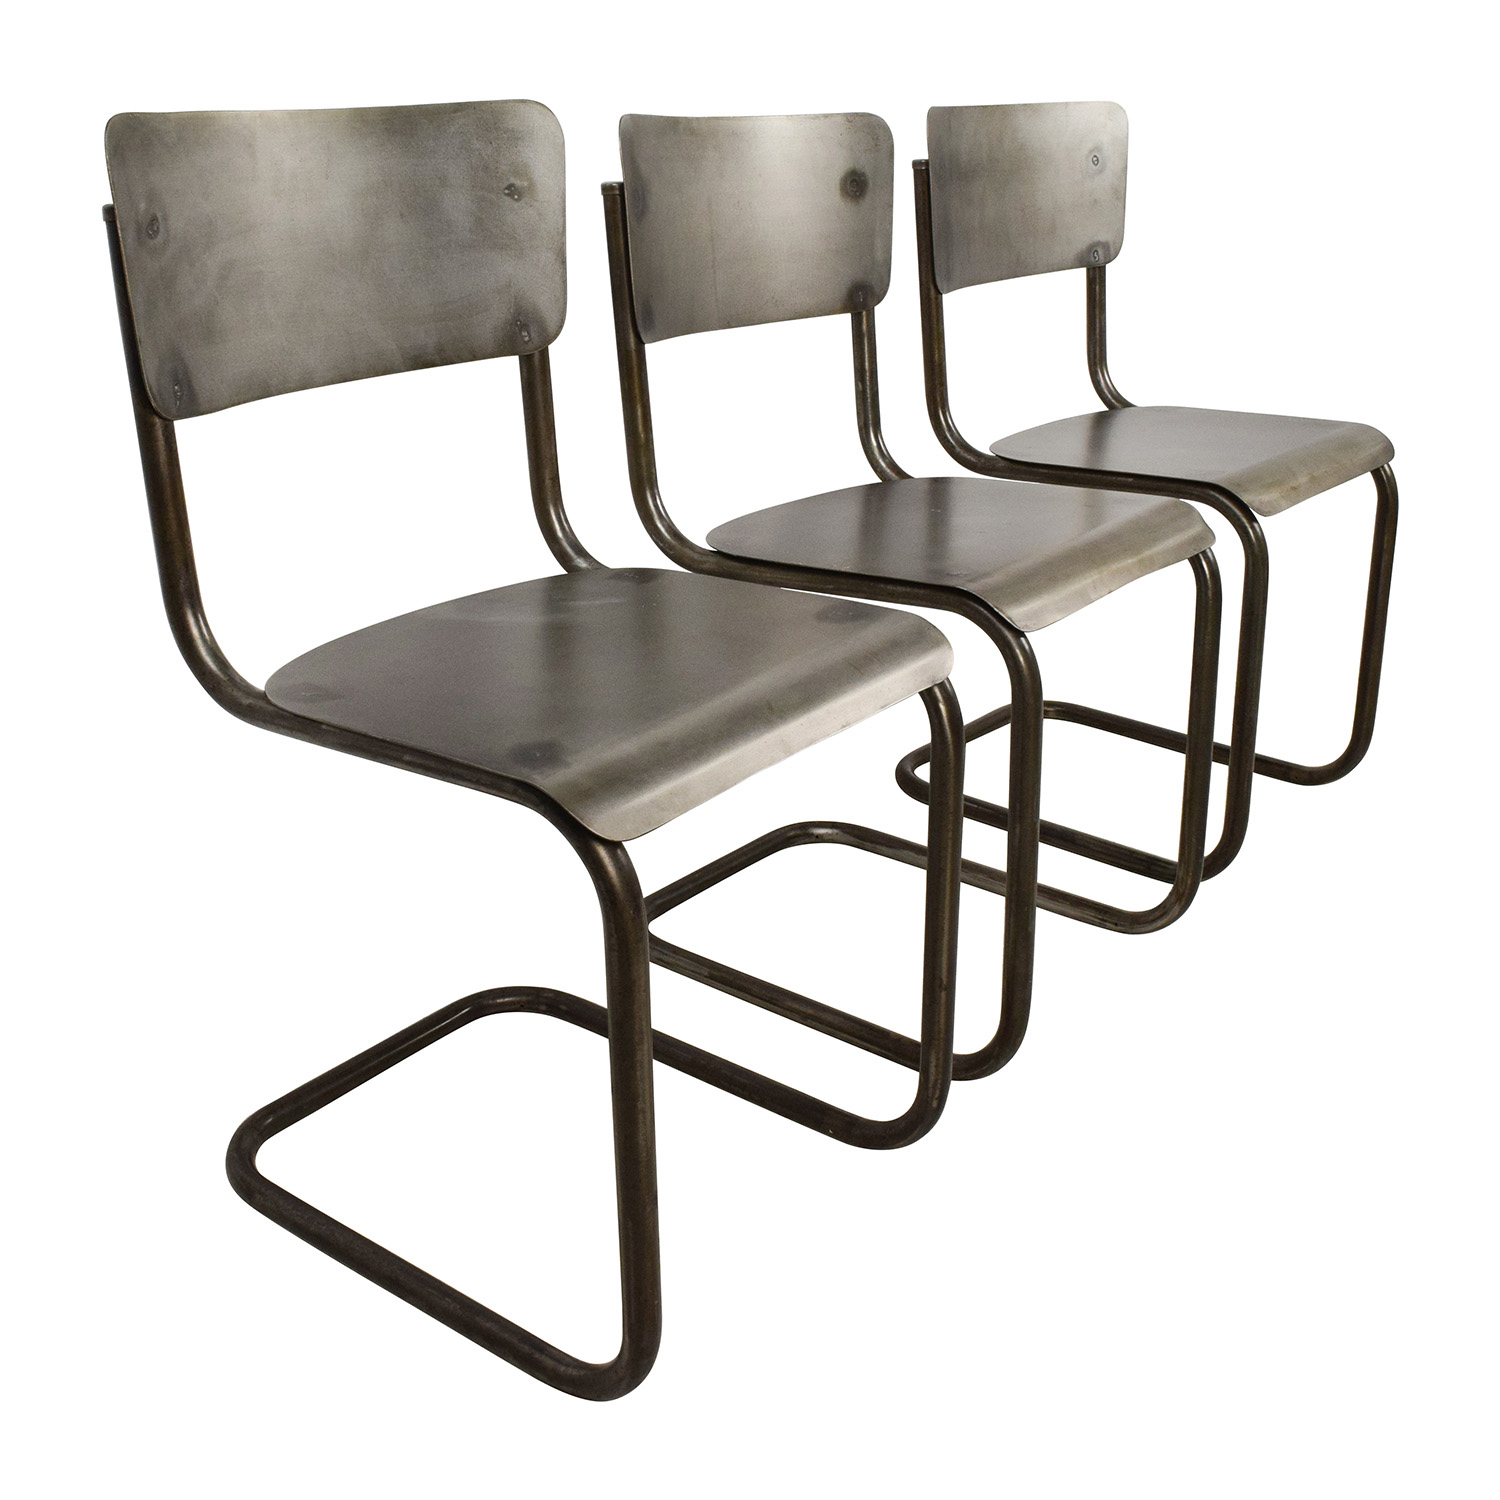 Metal Chairs 68 Off Industrial Style Metal Chair Set Chairs